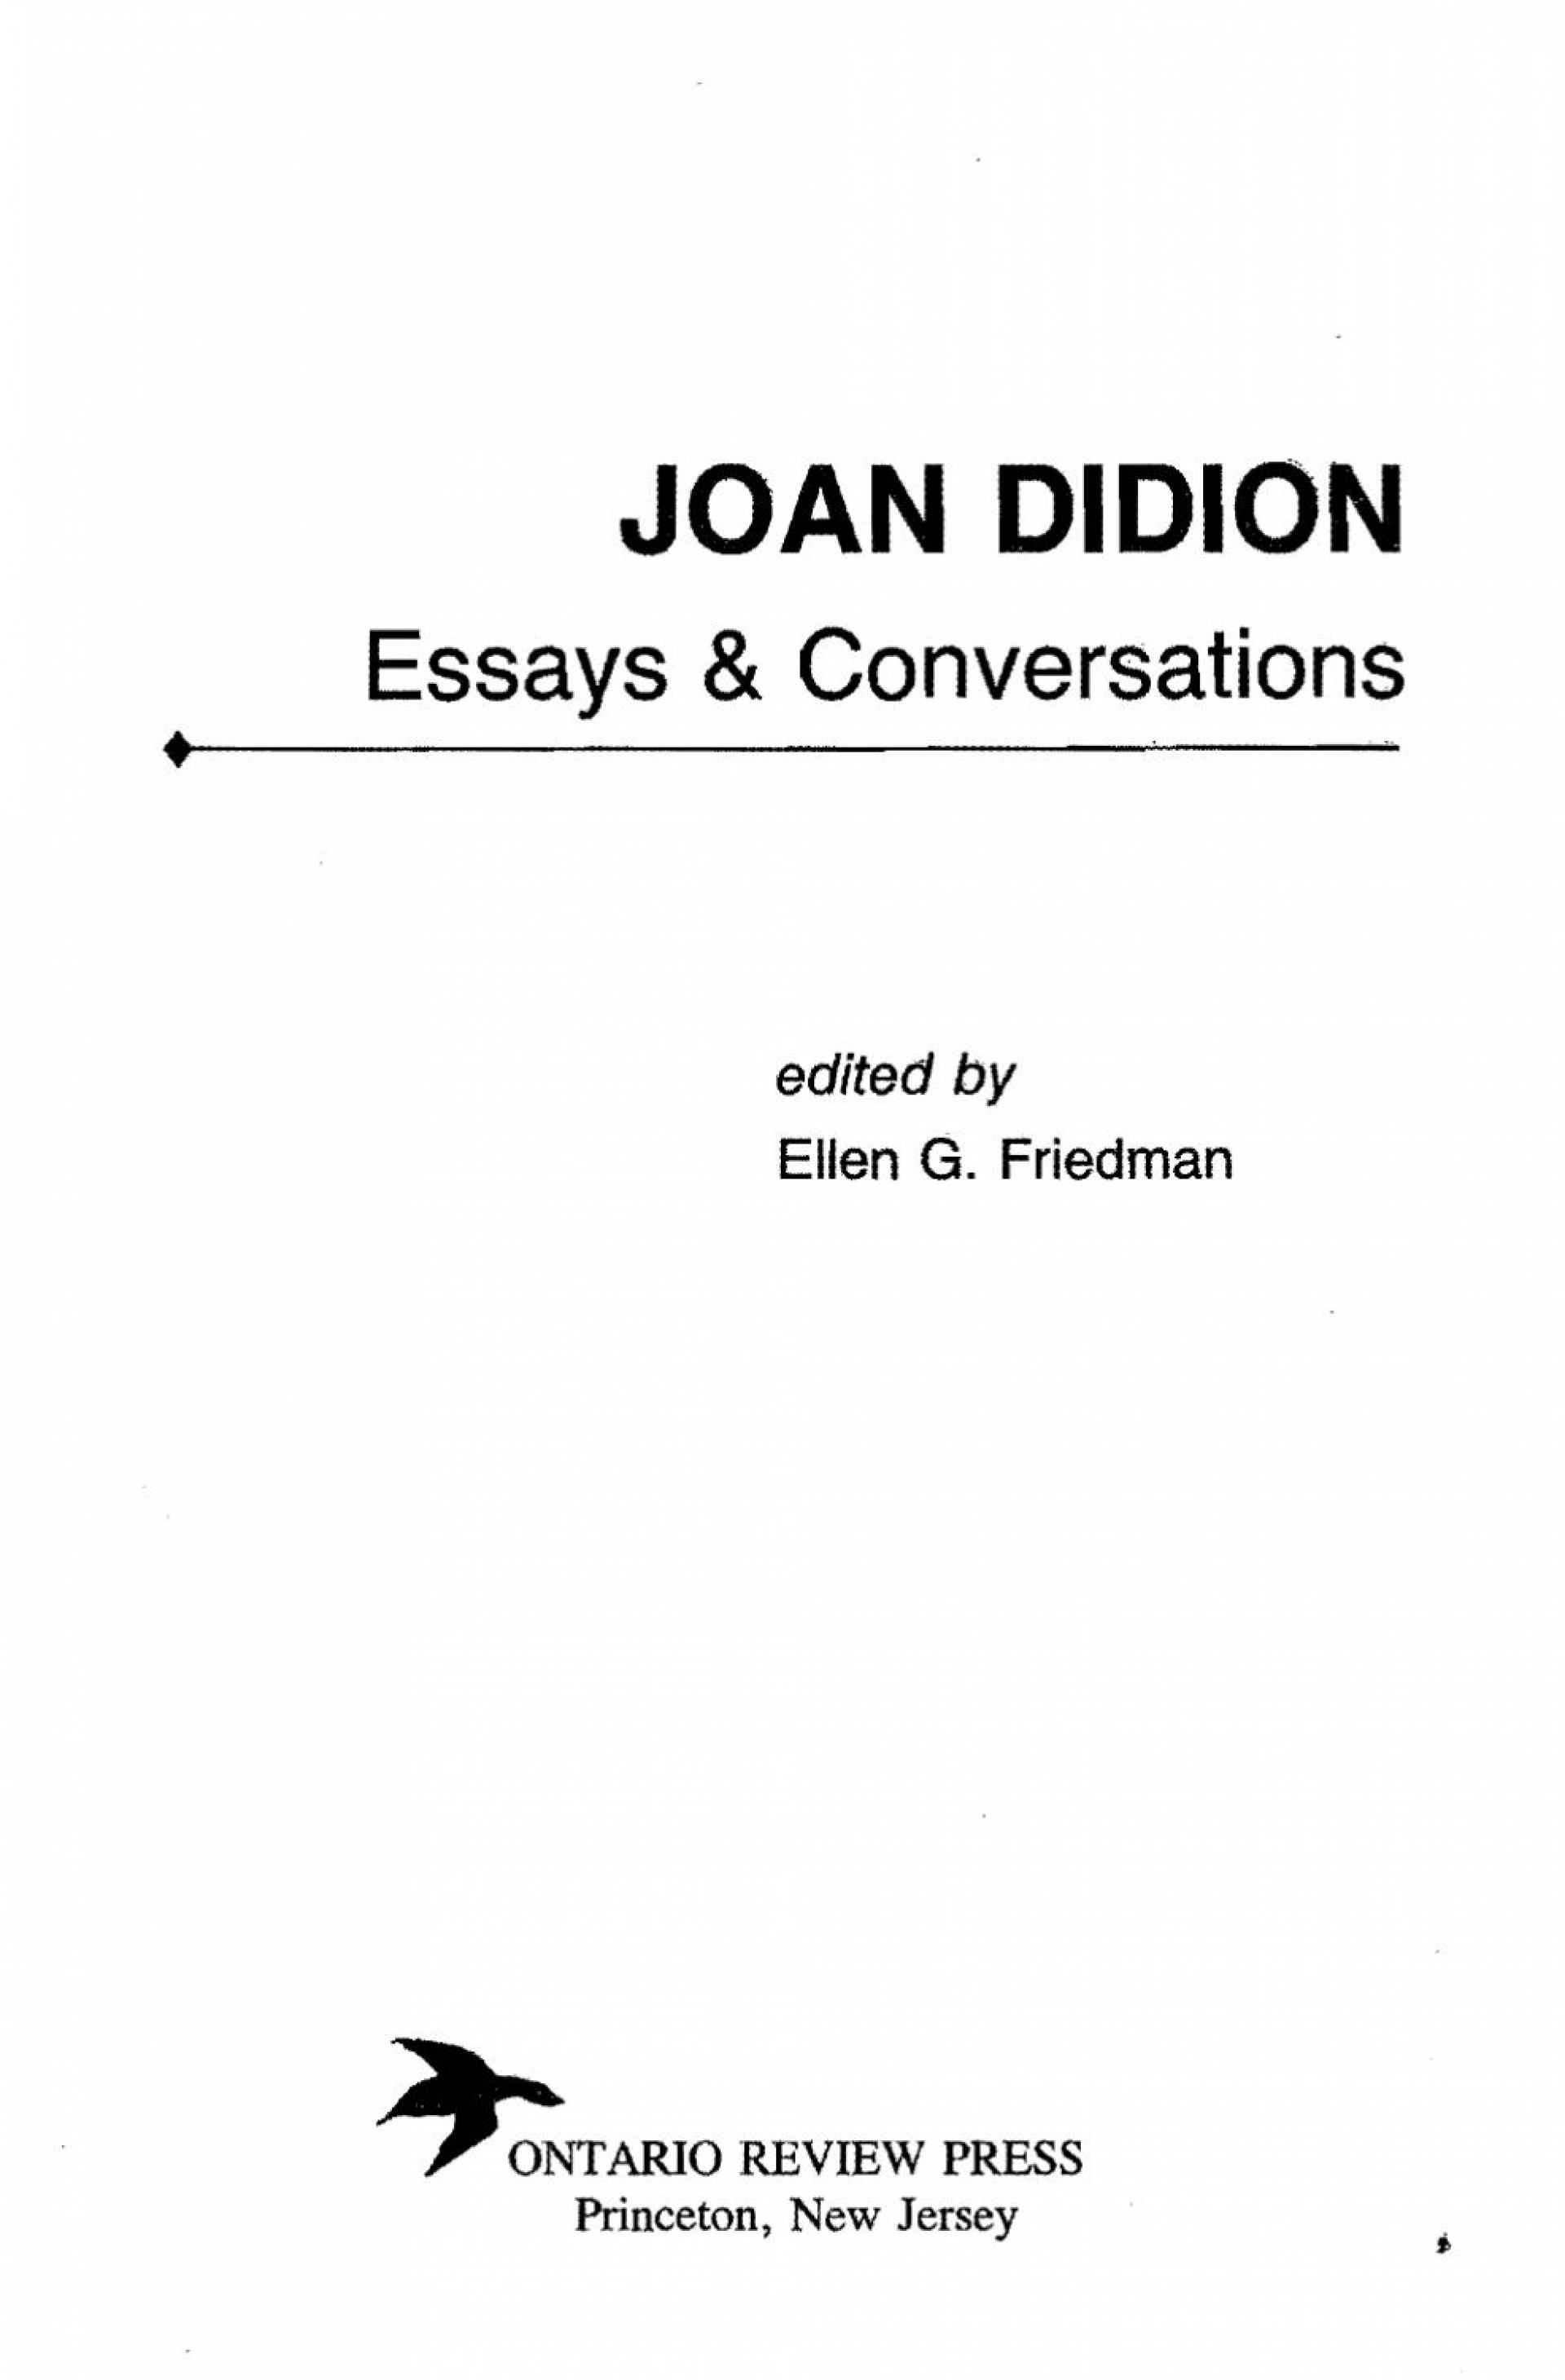 017 Essay Example Page 1 Joan Didion Singular Essays Collections On Santa Ana Winds Amazon 1920